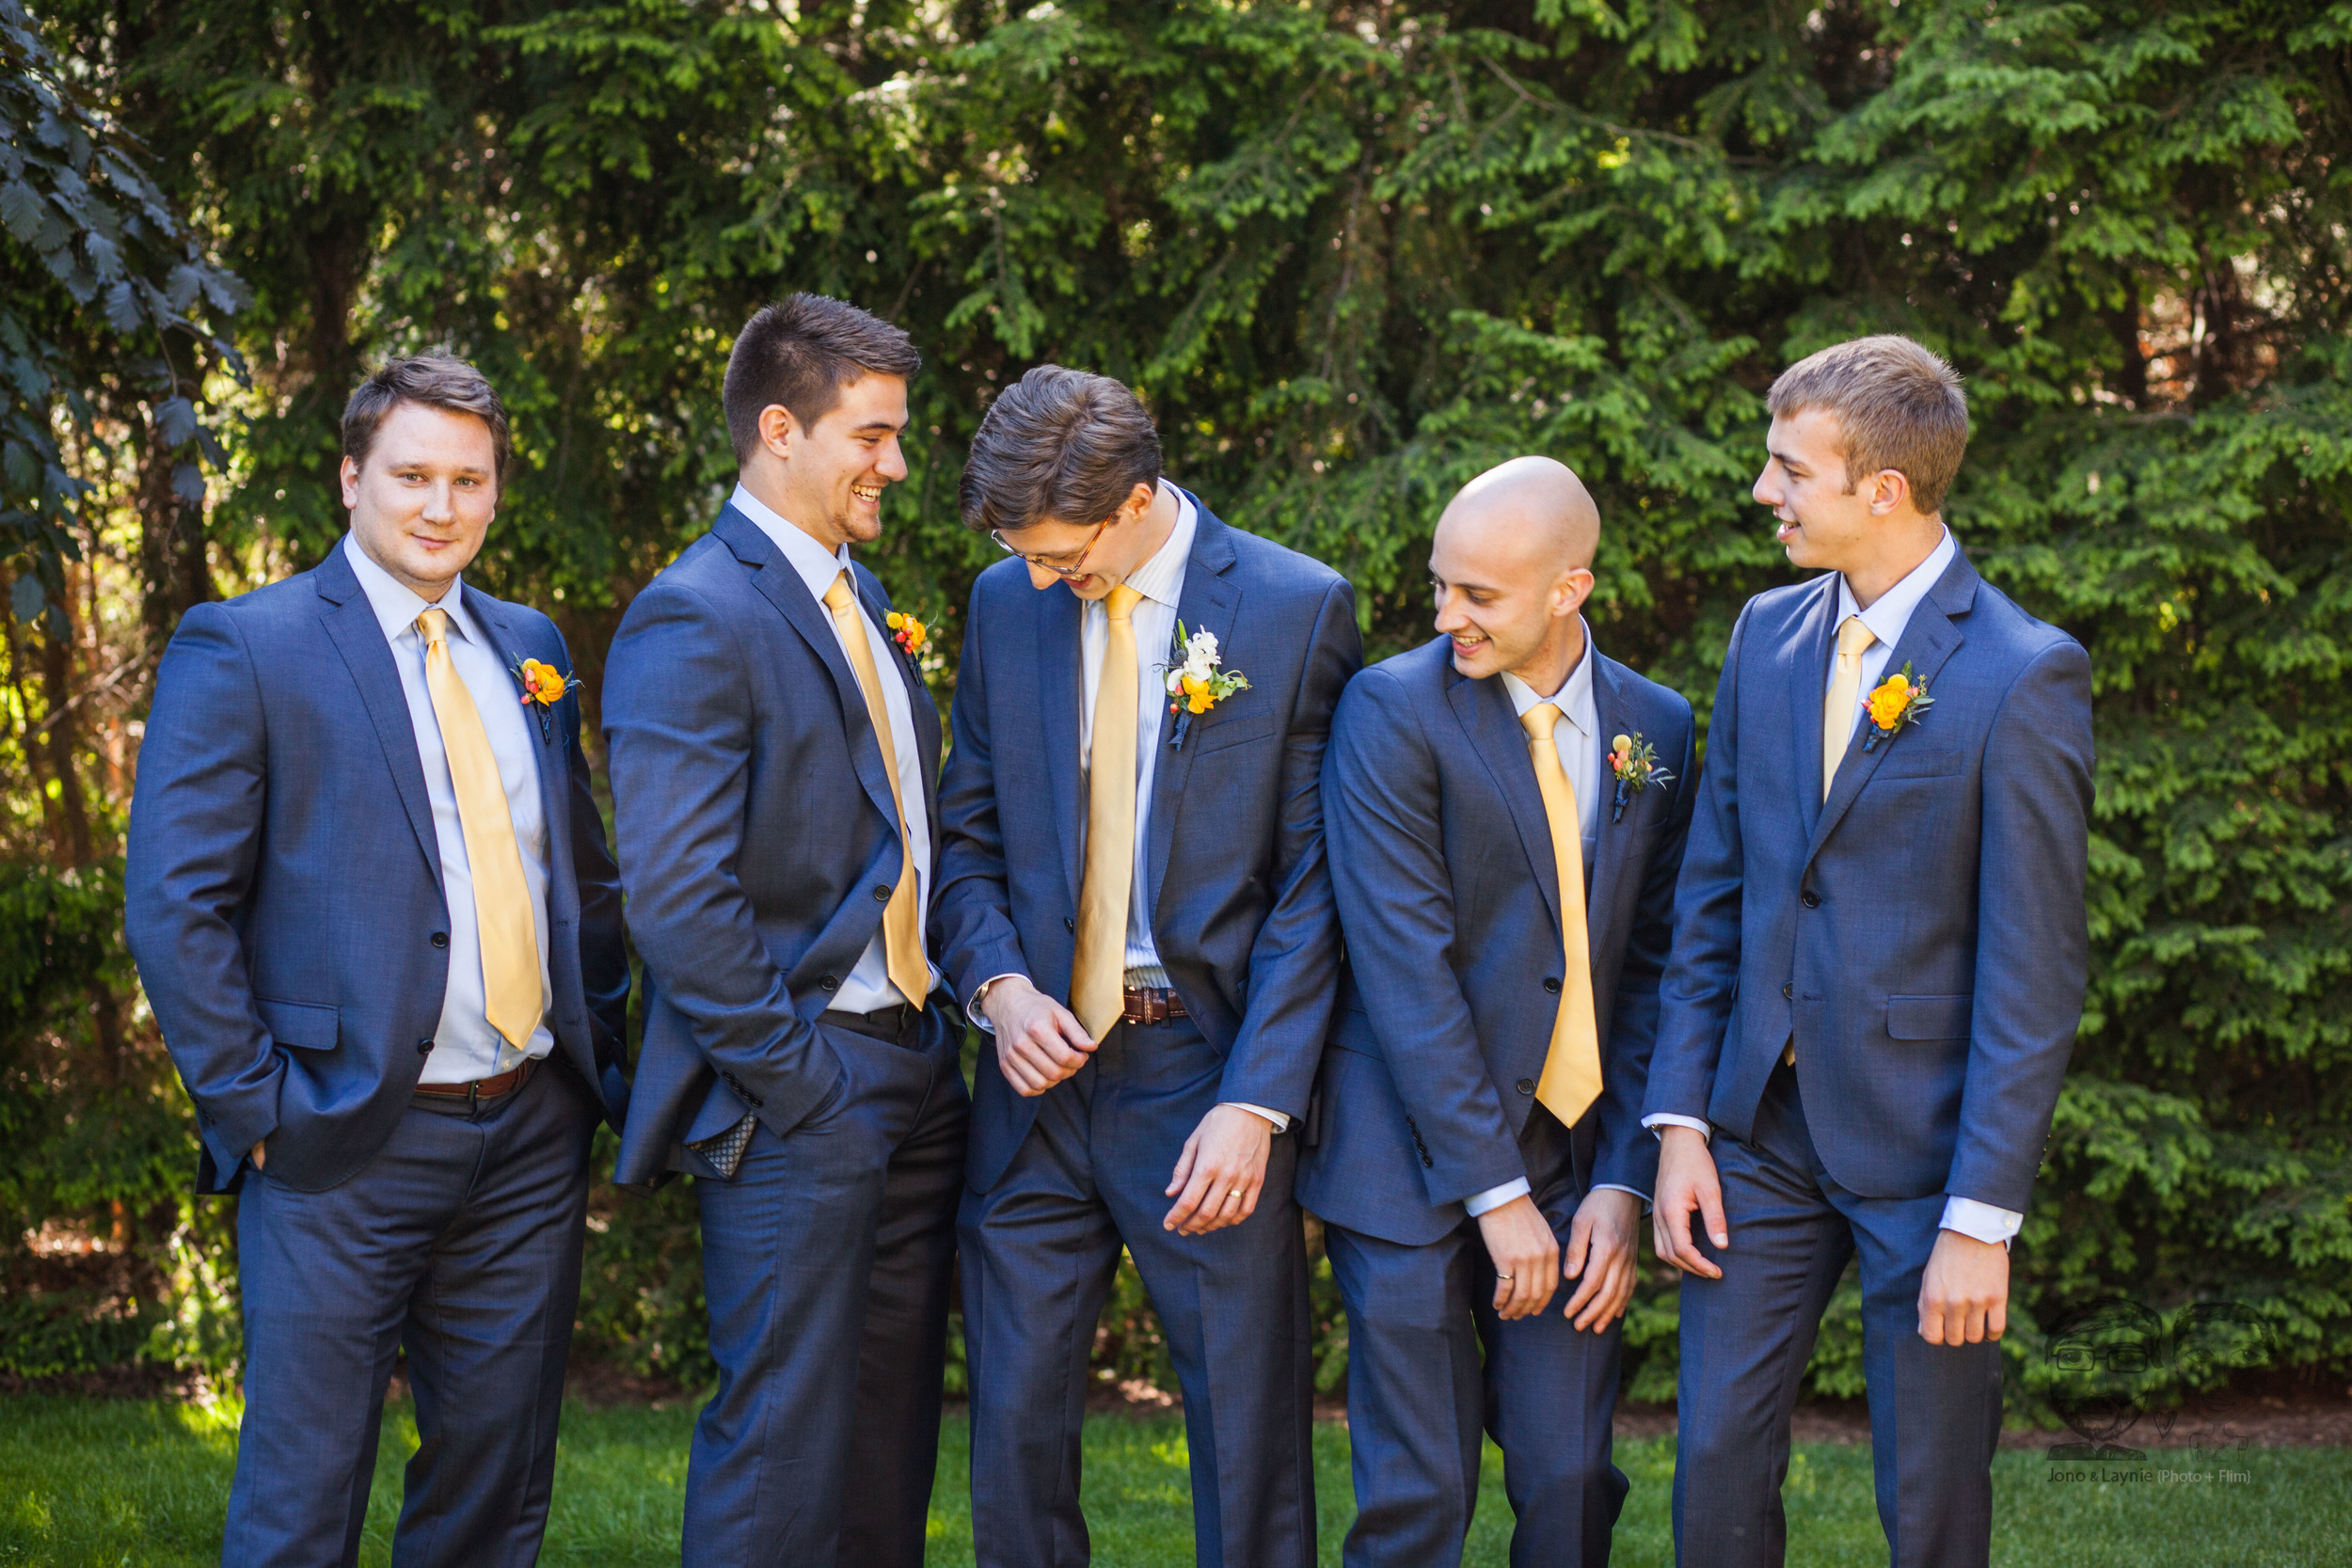 063Toronto Wedding Photographers and Videographers-Jono & Laynie Co.jpg